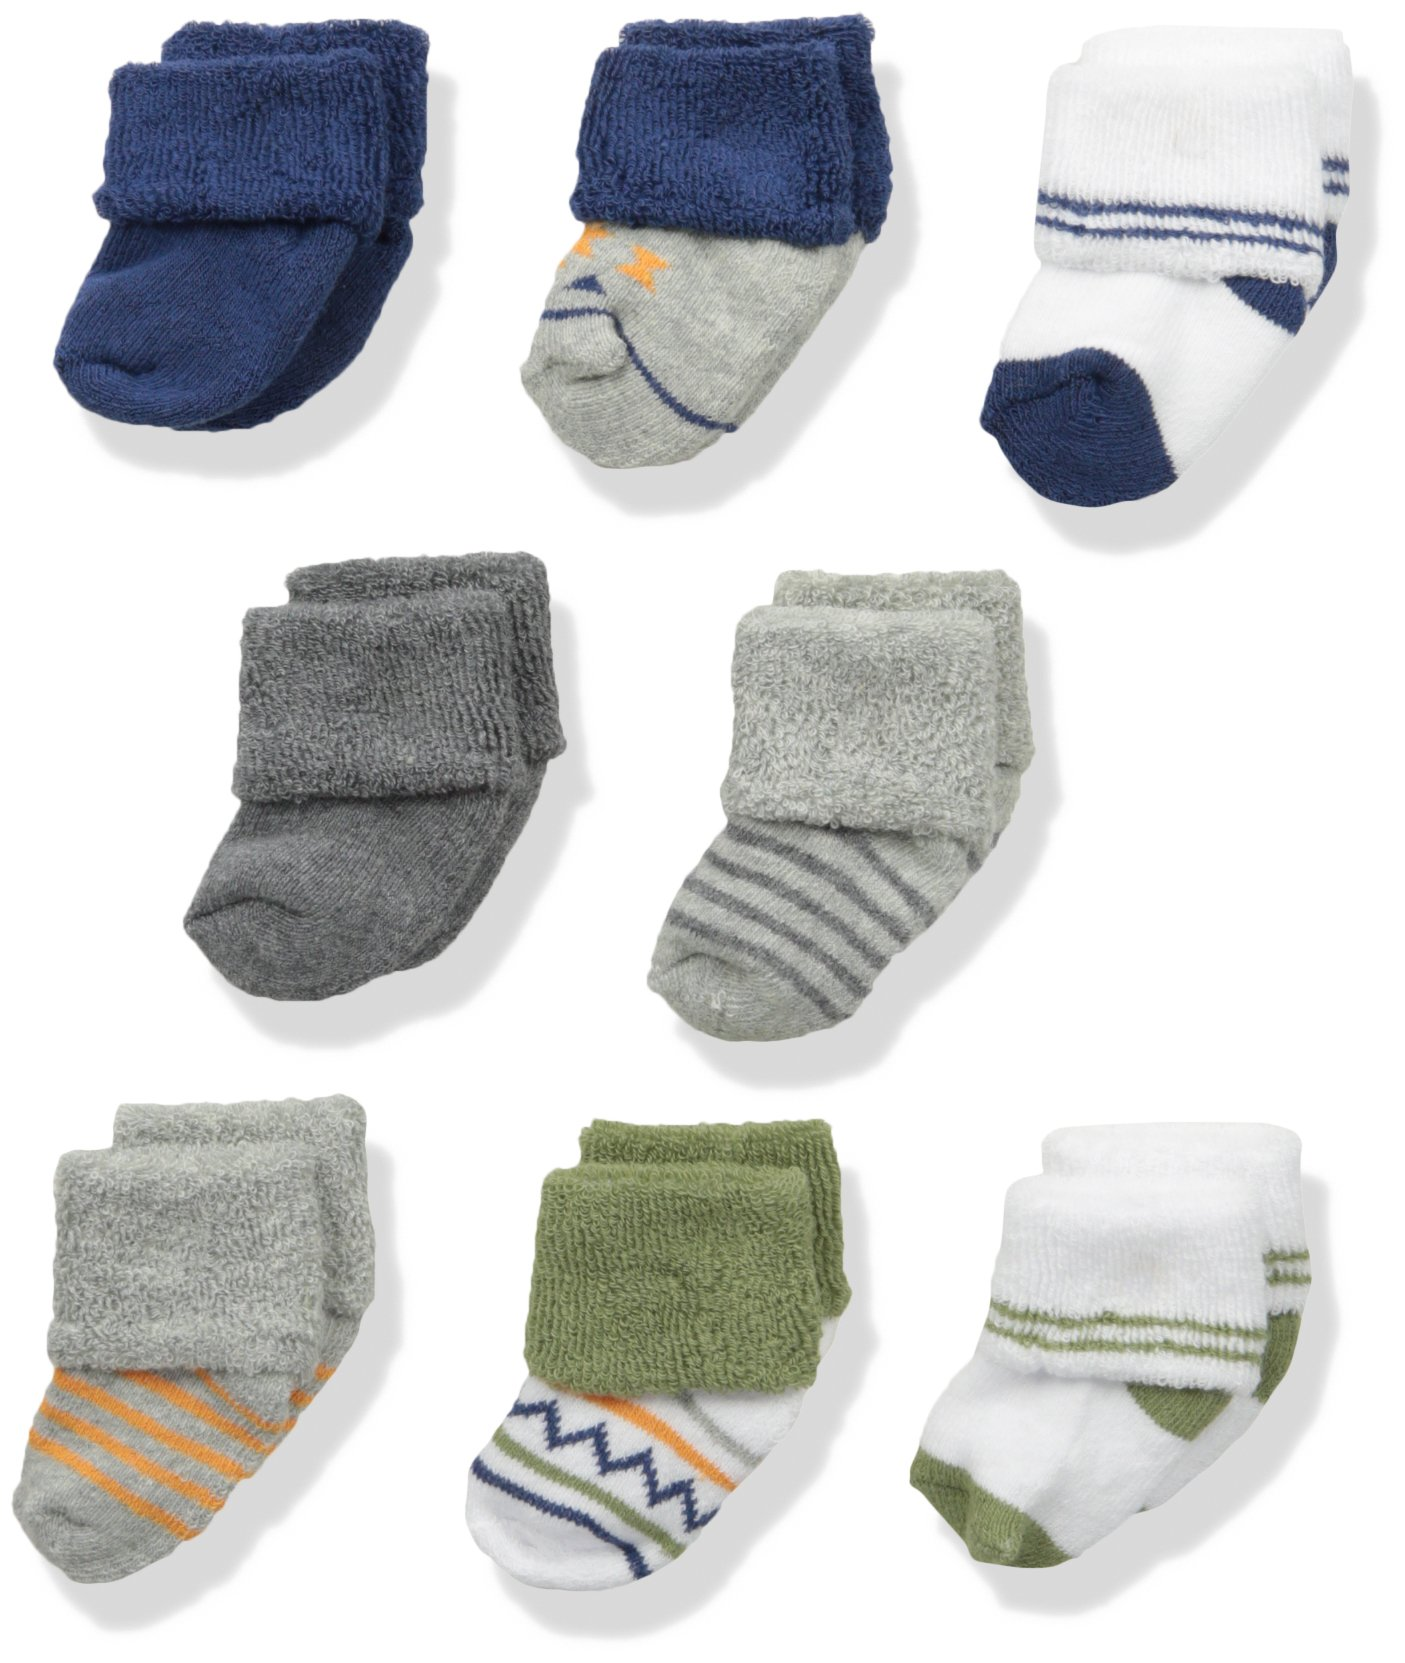 professional cover letter layout%0A Luvable Friends Unisex   Pack Newborn Socks